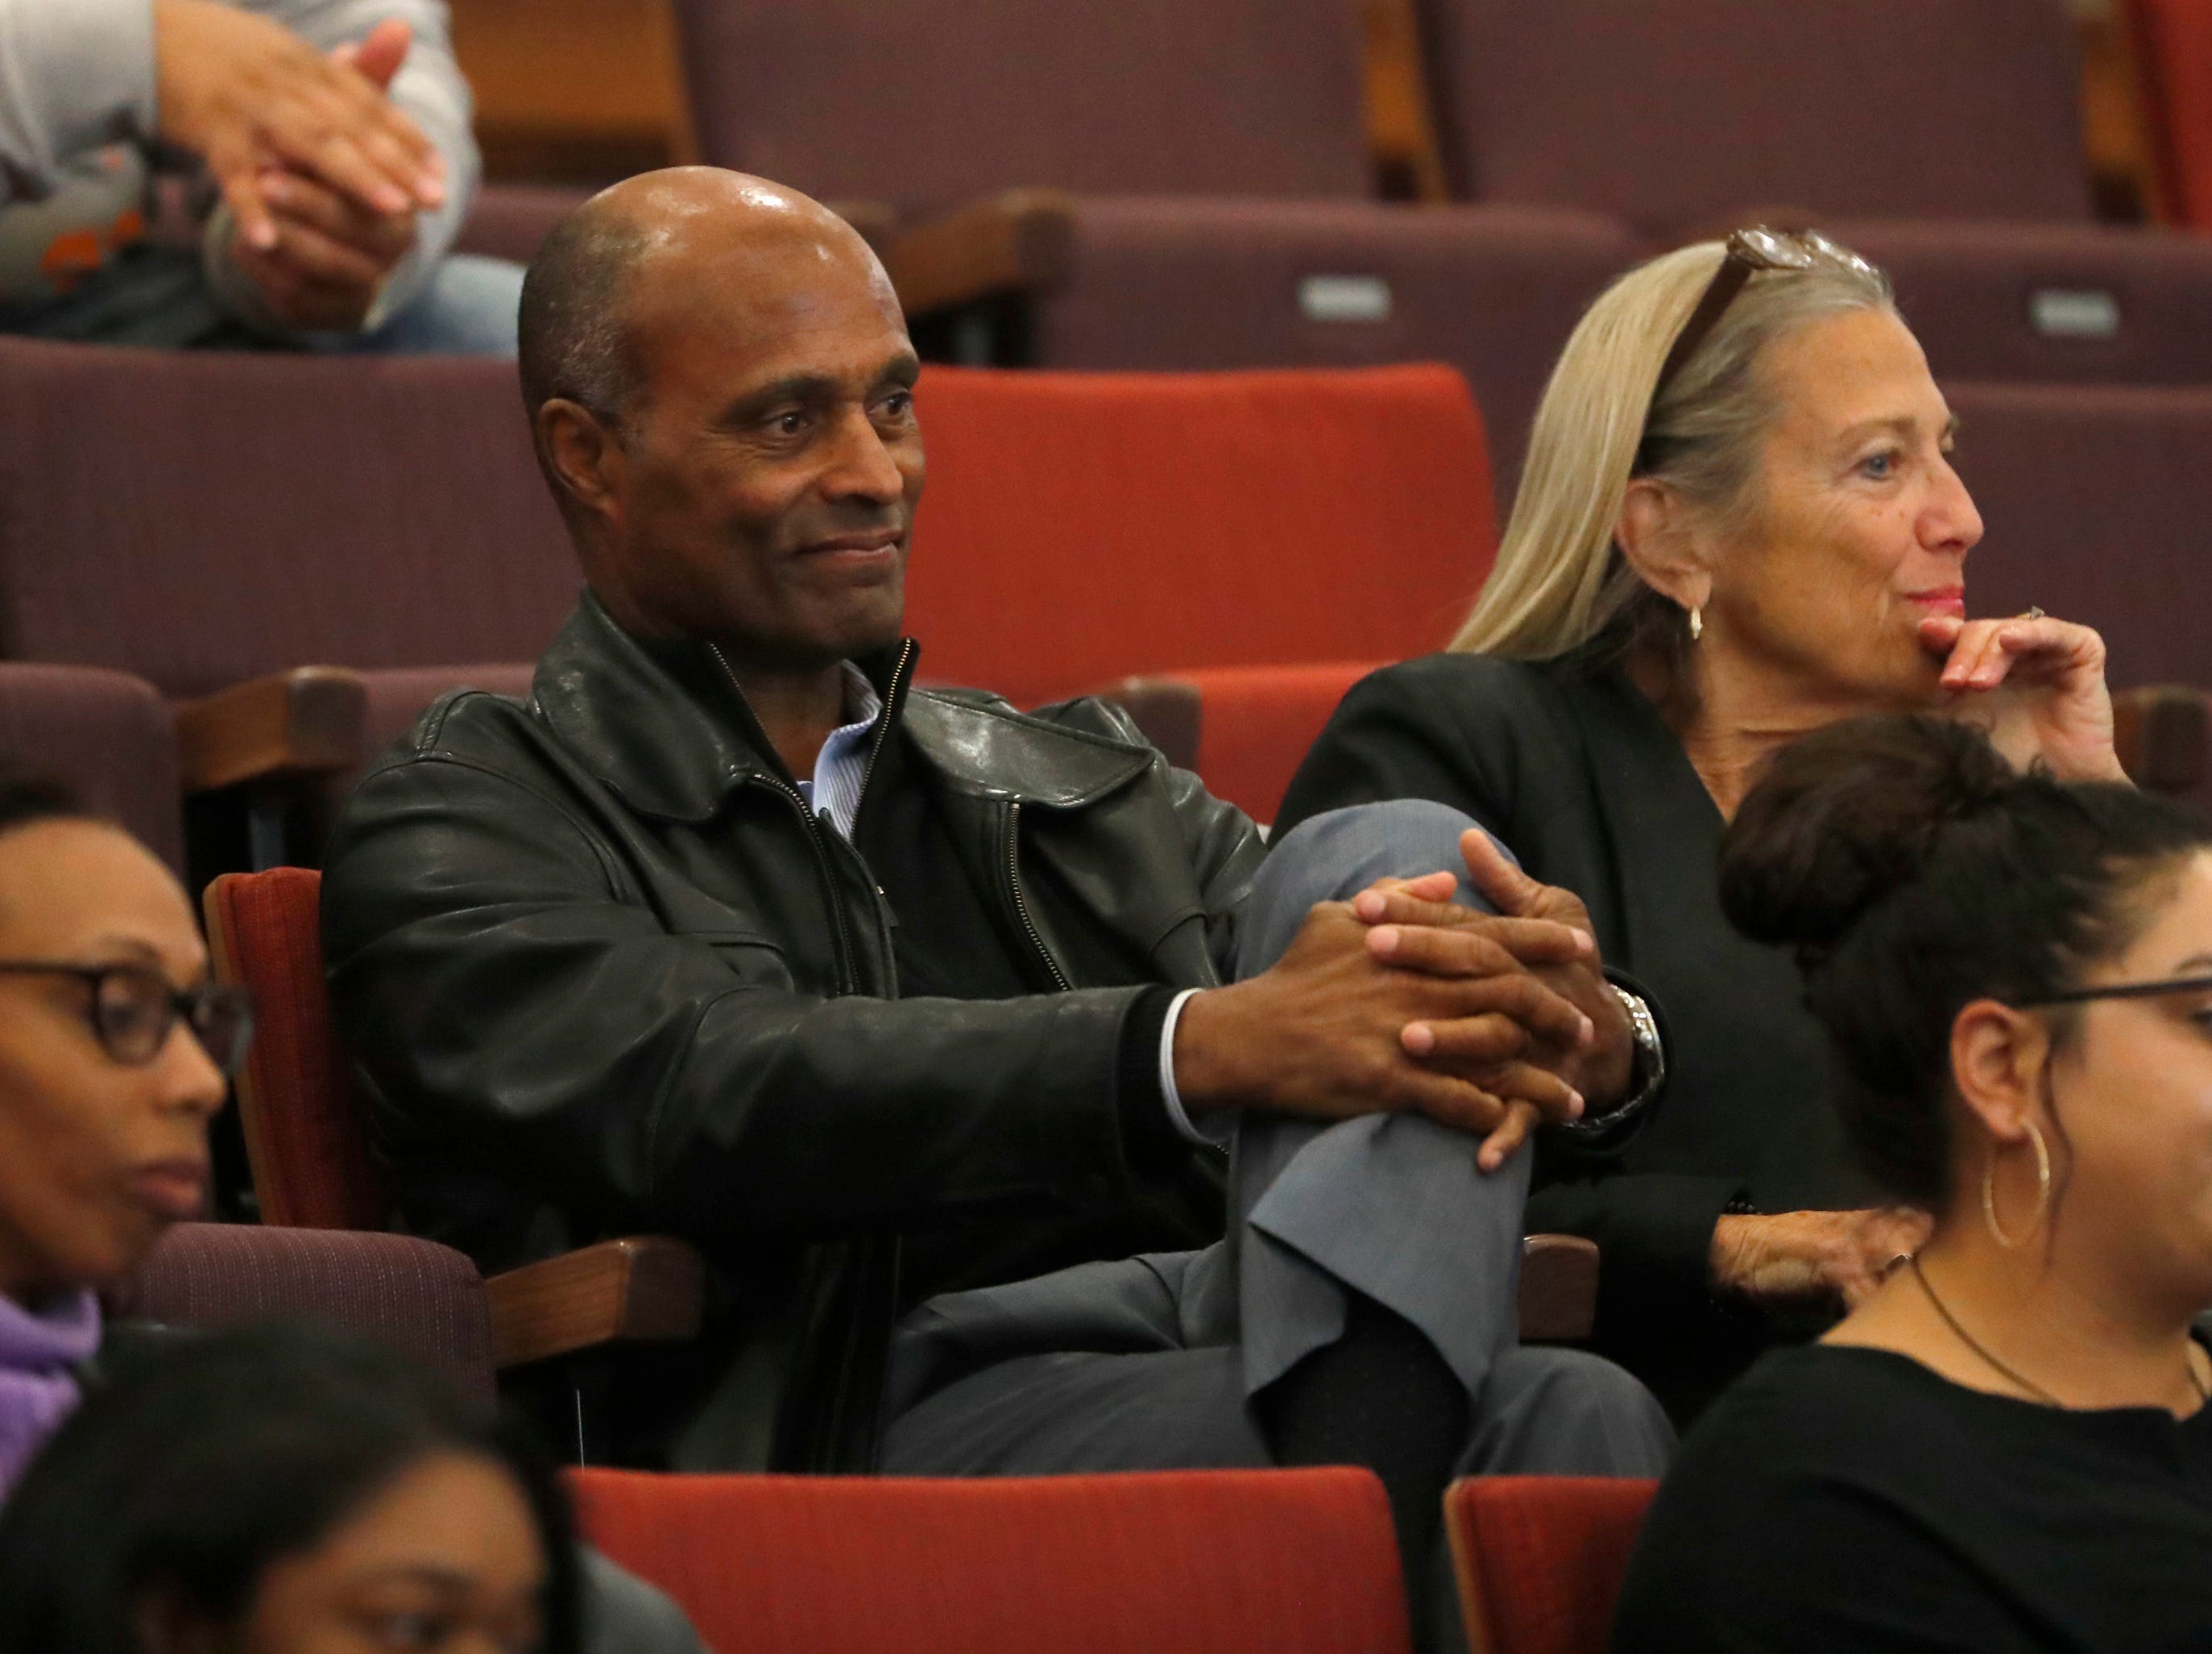 ASU athletic director Ray Anderson listens during a documentary screening and discussion of The Renaissance Period of the African American at Beus Center for Law and Society in Phoenix, Ariz. on February 11, 2019.